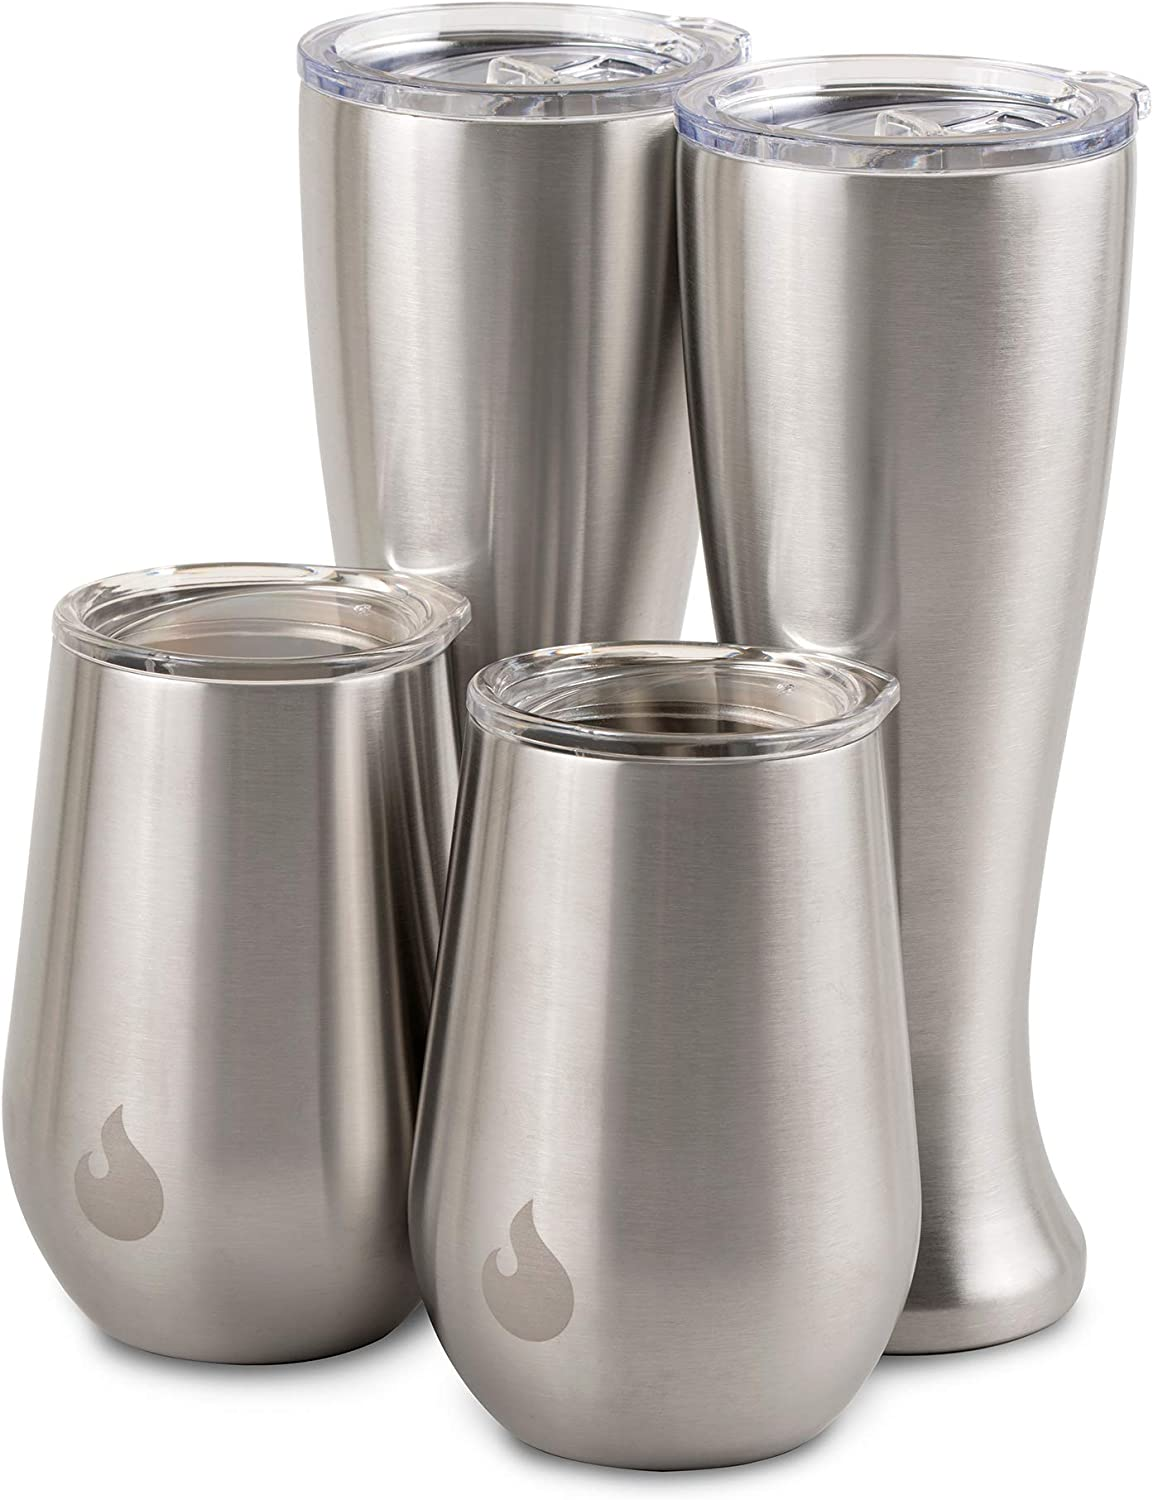 Mason Forge 16oz Beer Pilsner and 13oz Wine Tumbler Bundle | Durable Stainless Steel | Double Wall Vacuum Insulated | Sweat & Condensation Free | HOT or COLD Beverages | Happy Hour Duo!